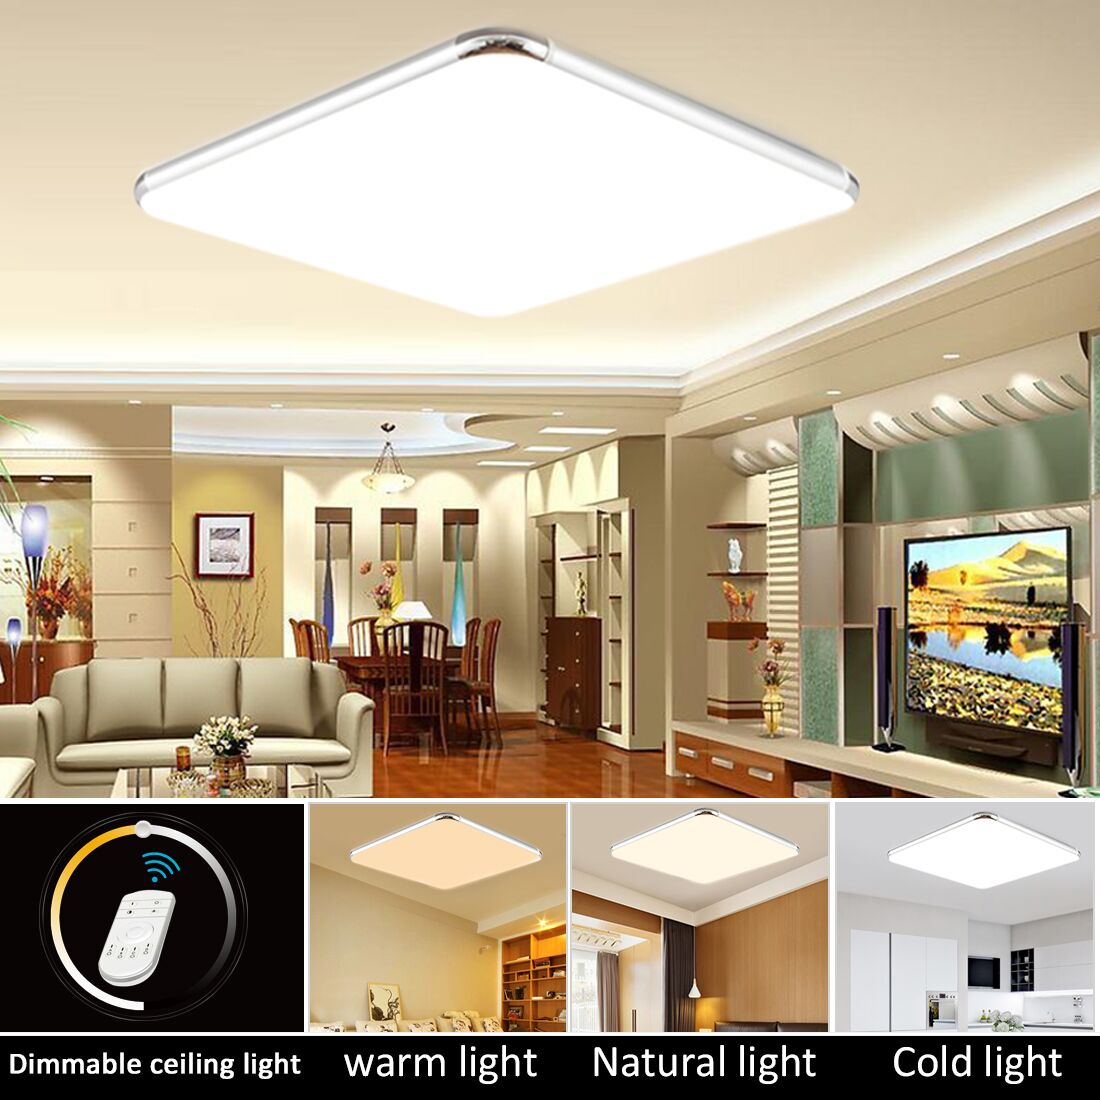 Details about dimmable led ceiling light ultra thin flush mount kitchen lamp fixture w remote